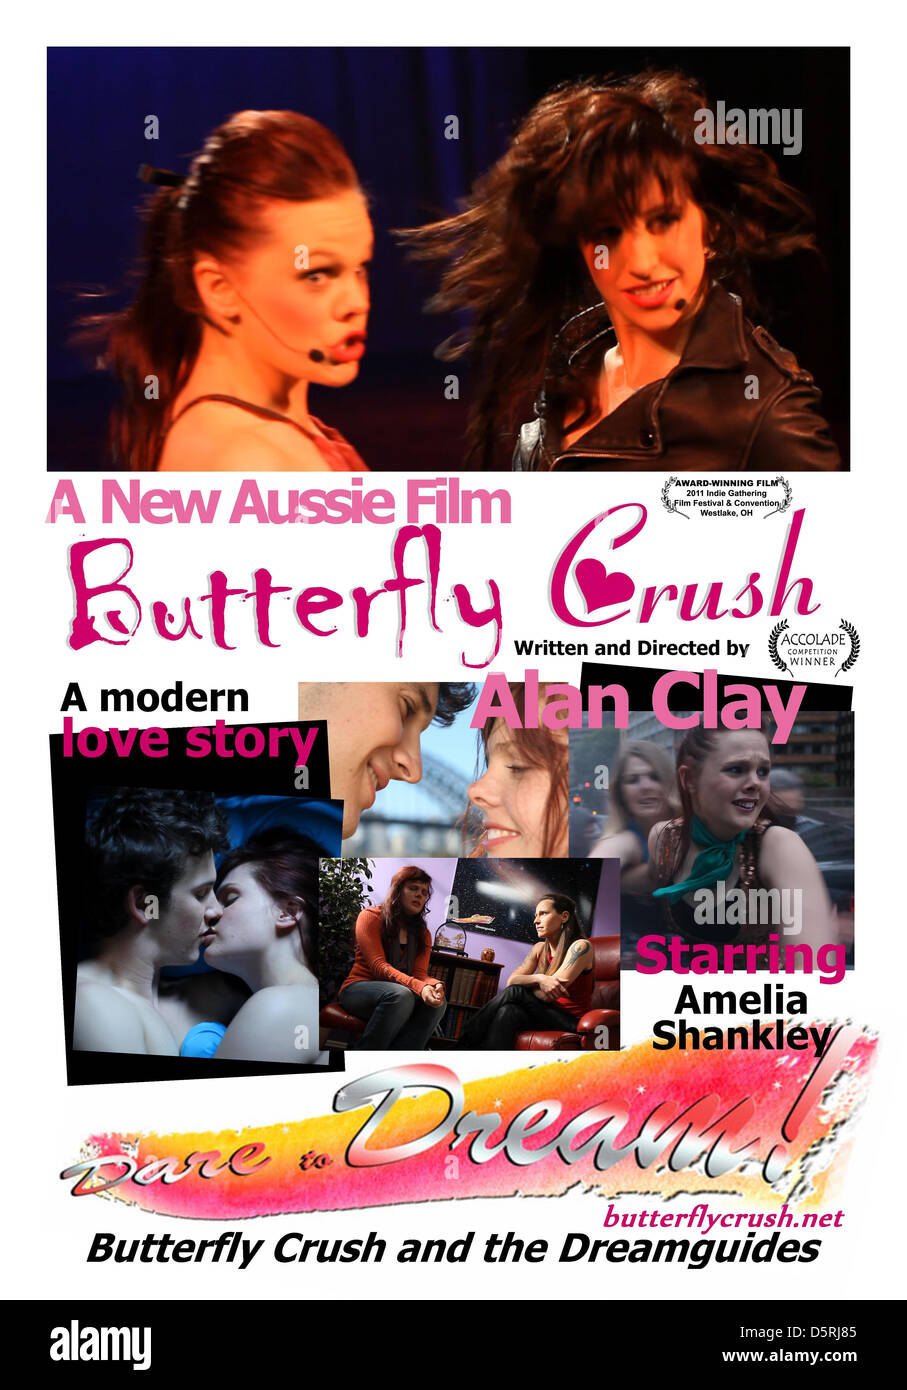 MOVIE POSTER BUTTERFLY CRUSH (2010) - Stock Image